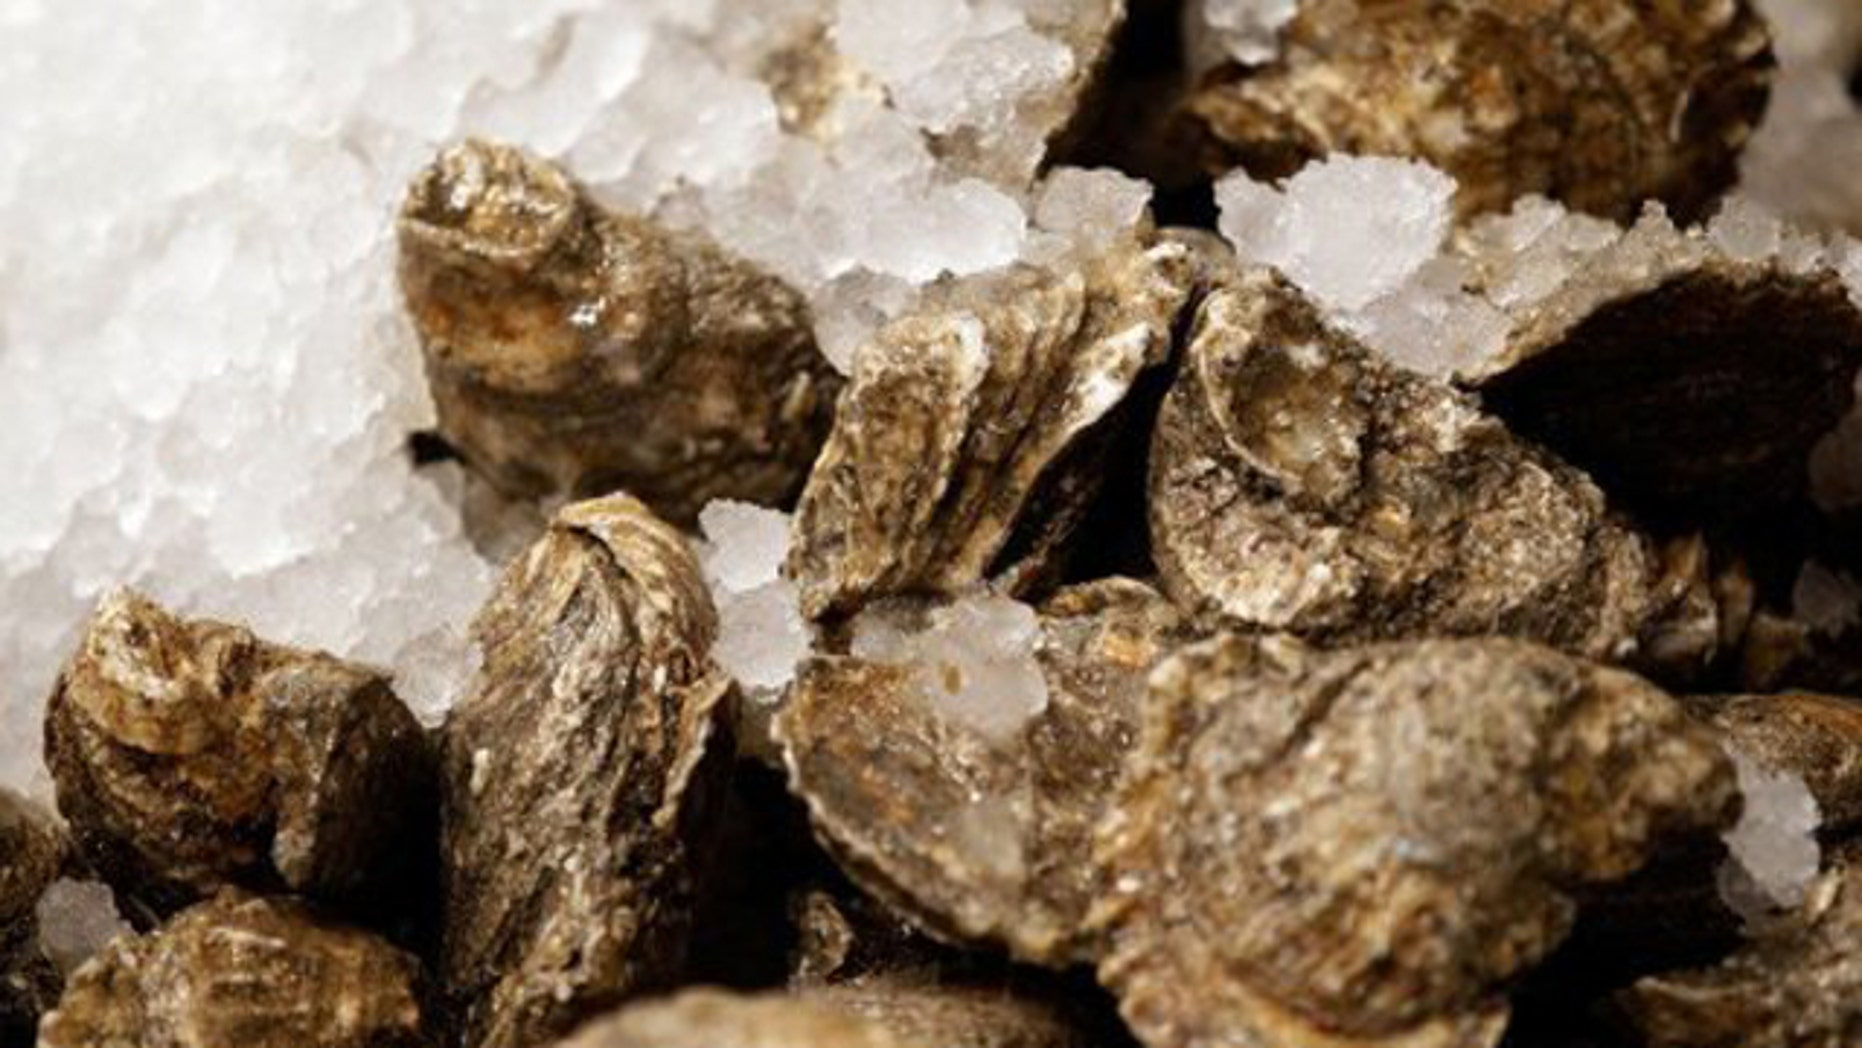 Oysters are important to ecosystems because they filter impurities from water -- yet the delicious mollusks are rapidly vanishing from the world's waterways.